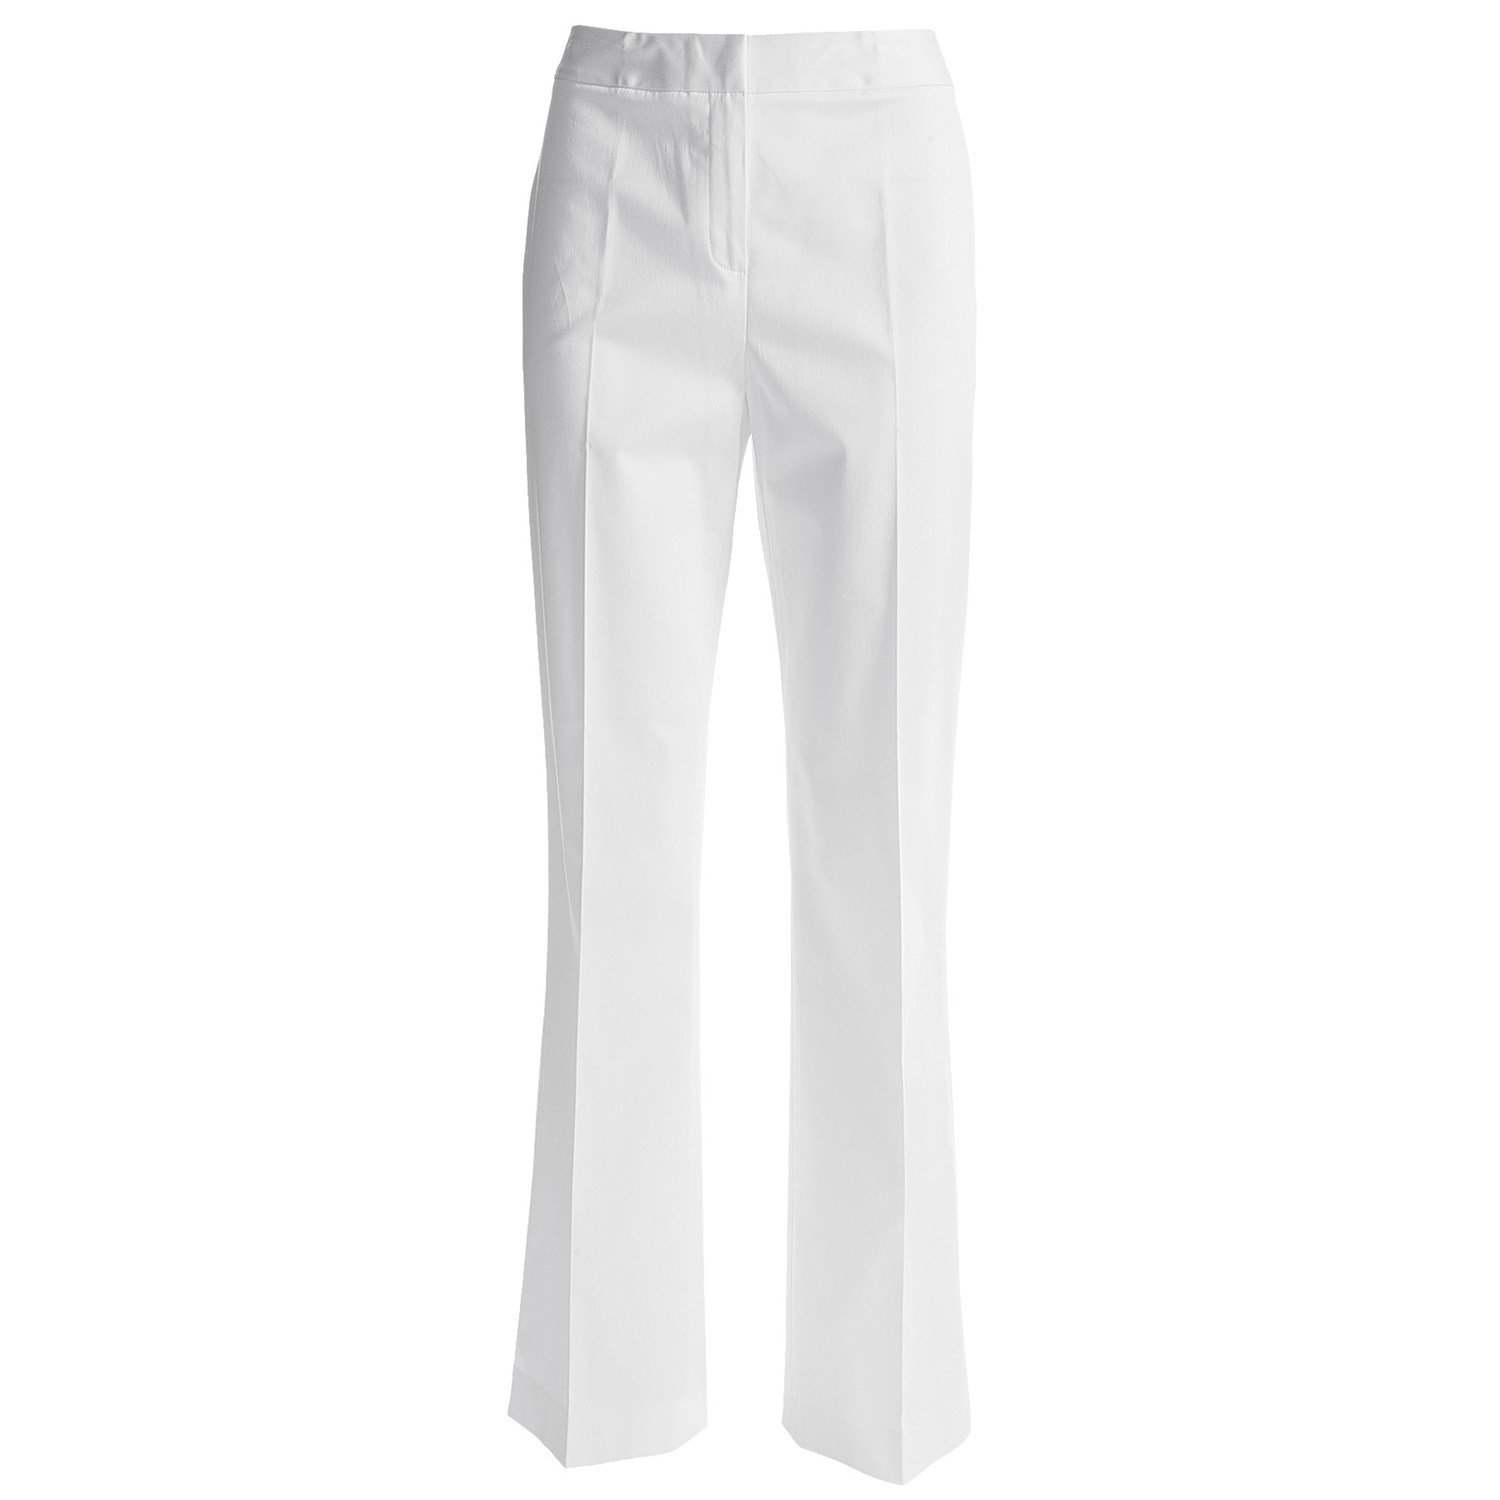 Creative  School Girls Dickies School Uniform Pants  Ideal Uniform Store